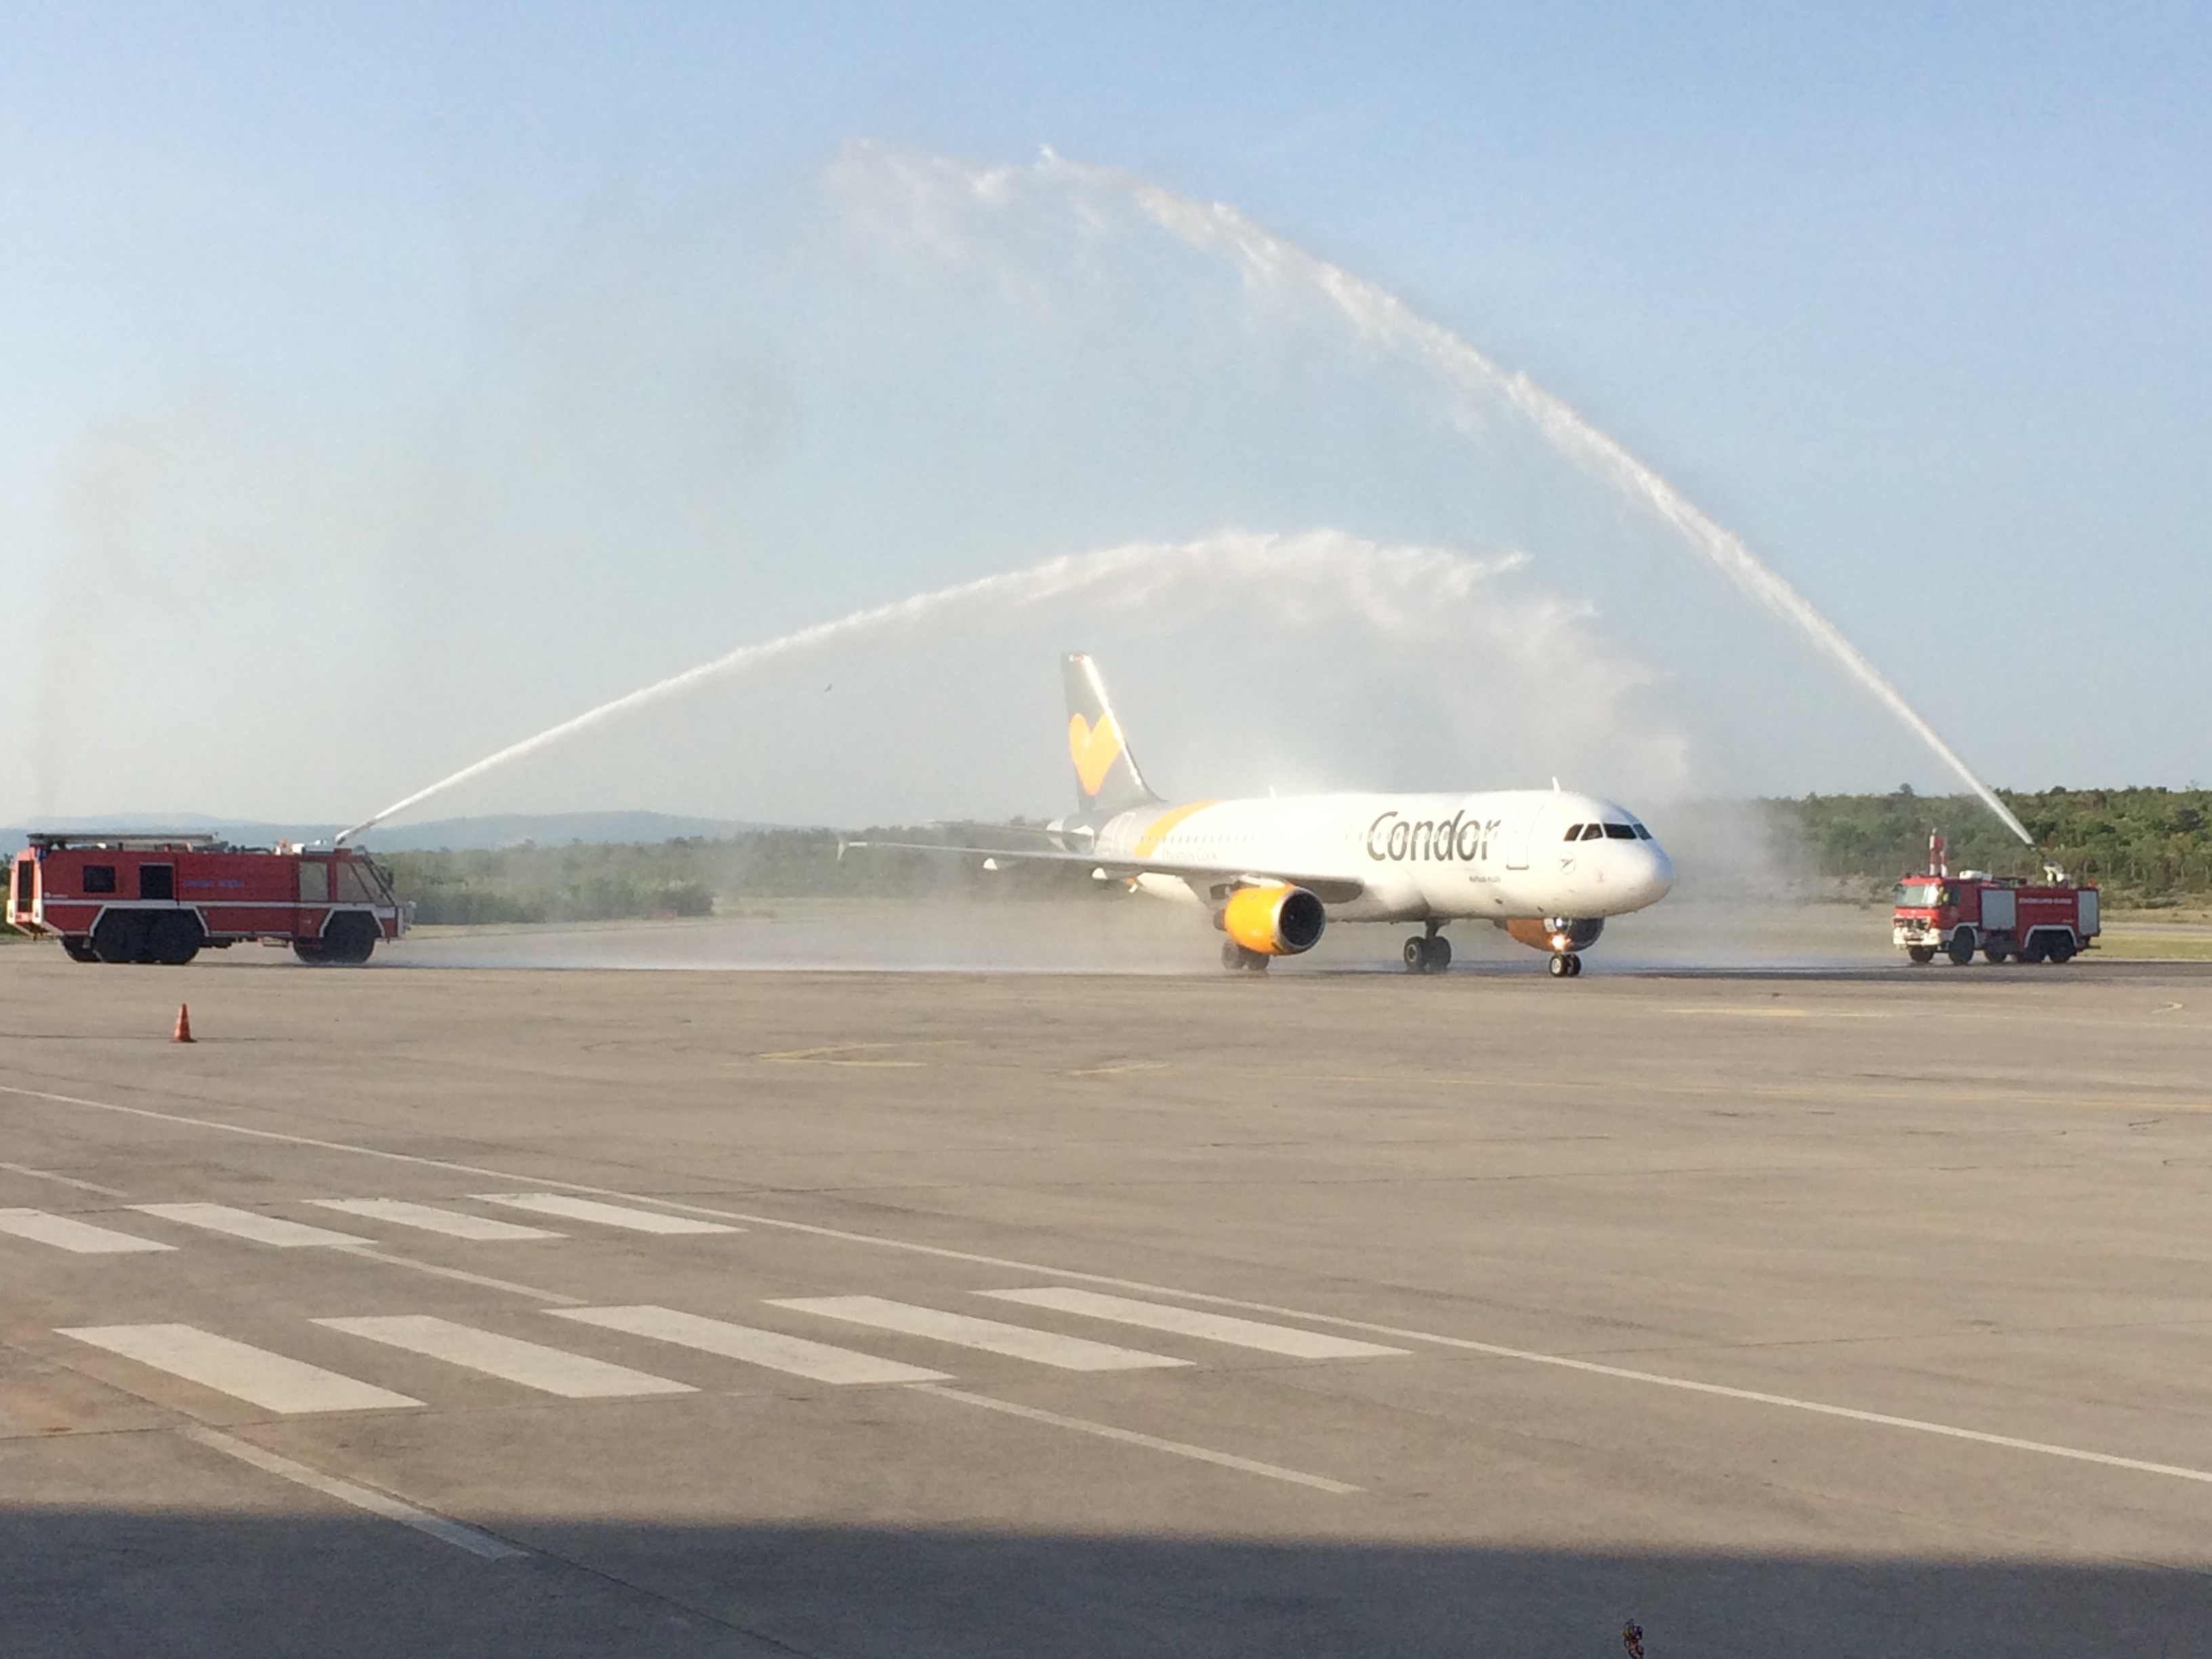 Official inauguration of first Condor aircraft!